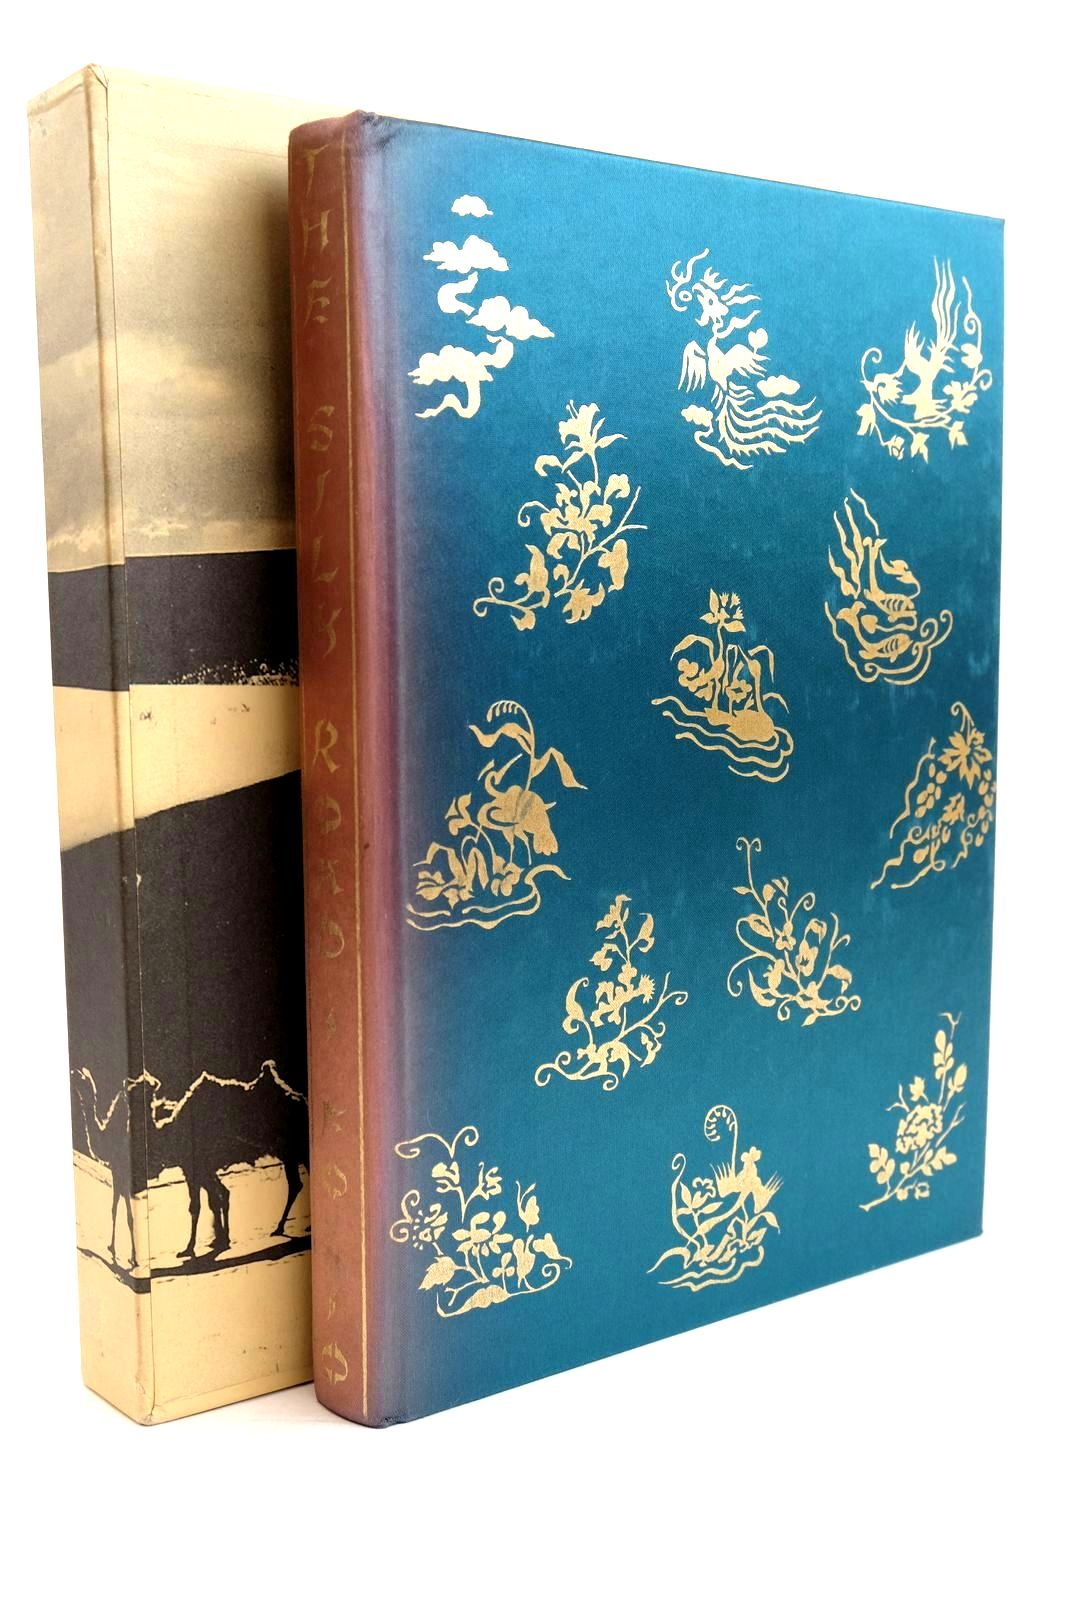 Photo of THE SILK ROAD written by Wood, Frances published by Folio Society (STOCK CODE: 1320547)  for sale by Stella & Rose's Books